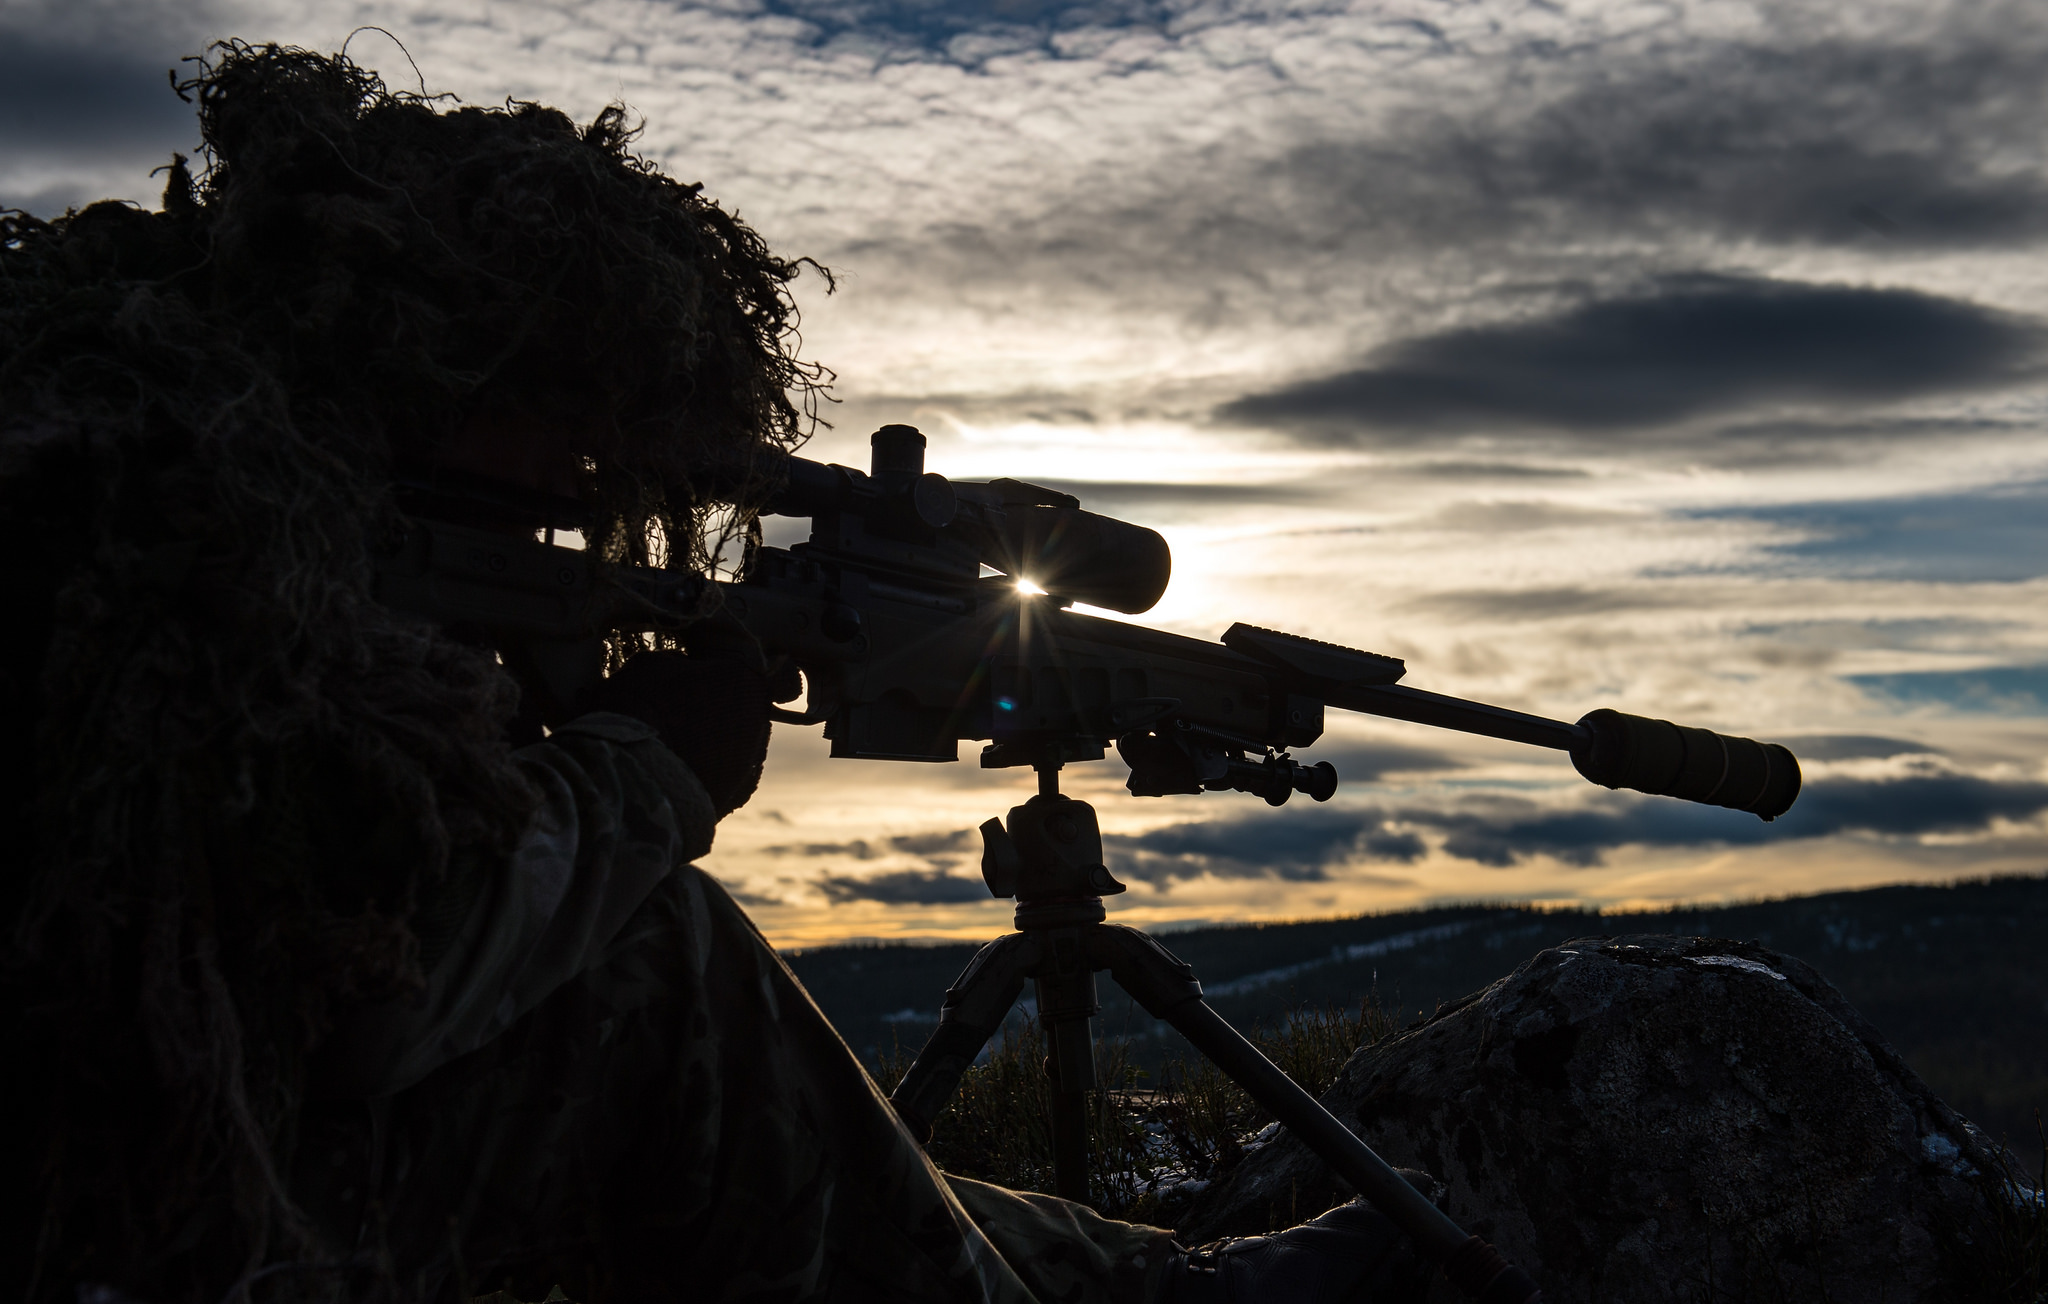 A British sniper from 1st Battalion, Royal Irish Regiment, prepares to fire his riffle Oct. 25, 2018, during joint sniper training as part of Exercise Trident Juncture 2018 in Rena, Norway. (Sgt. Marc-André Gaudreault/NATO)